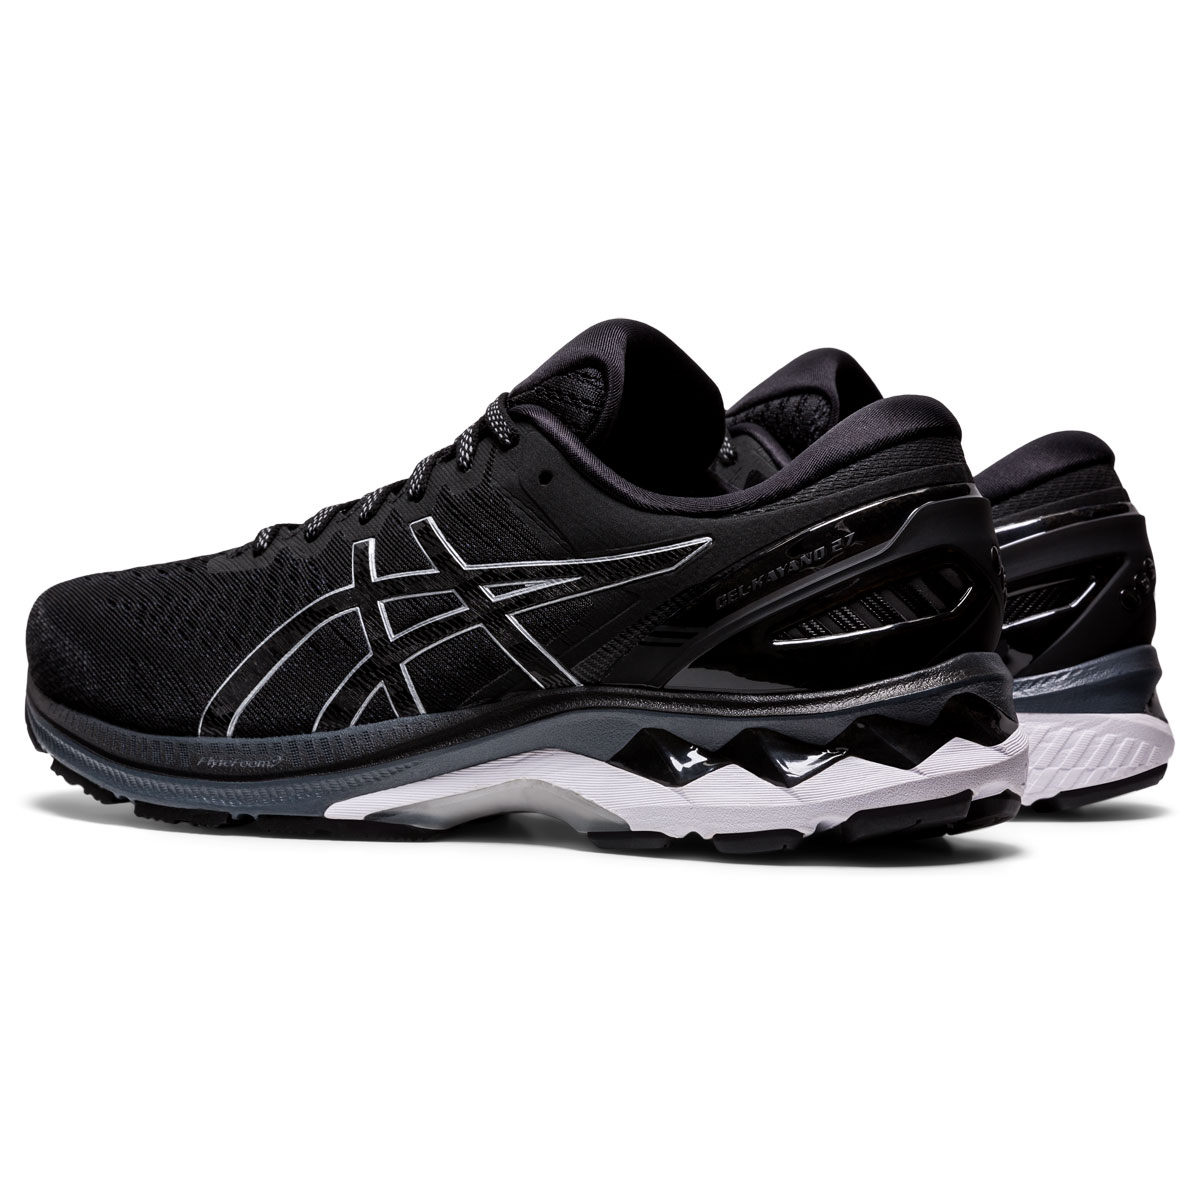 Men's Asics GEL-Kayano 27 Running Shoe - Color: Black/Pure Silv (Regular Width) - Size: 6, Black/Pure Silver, large, image 4